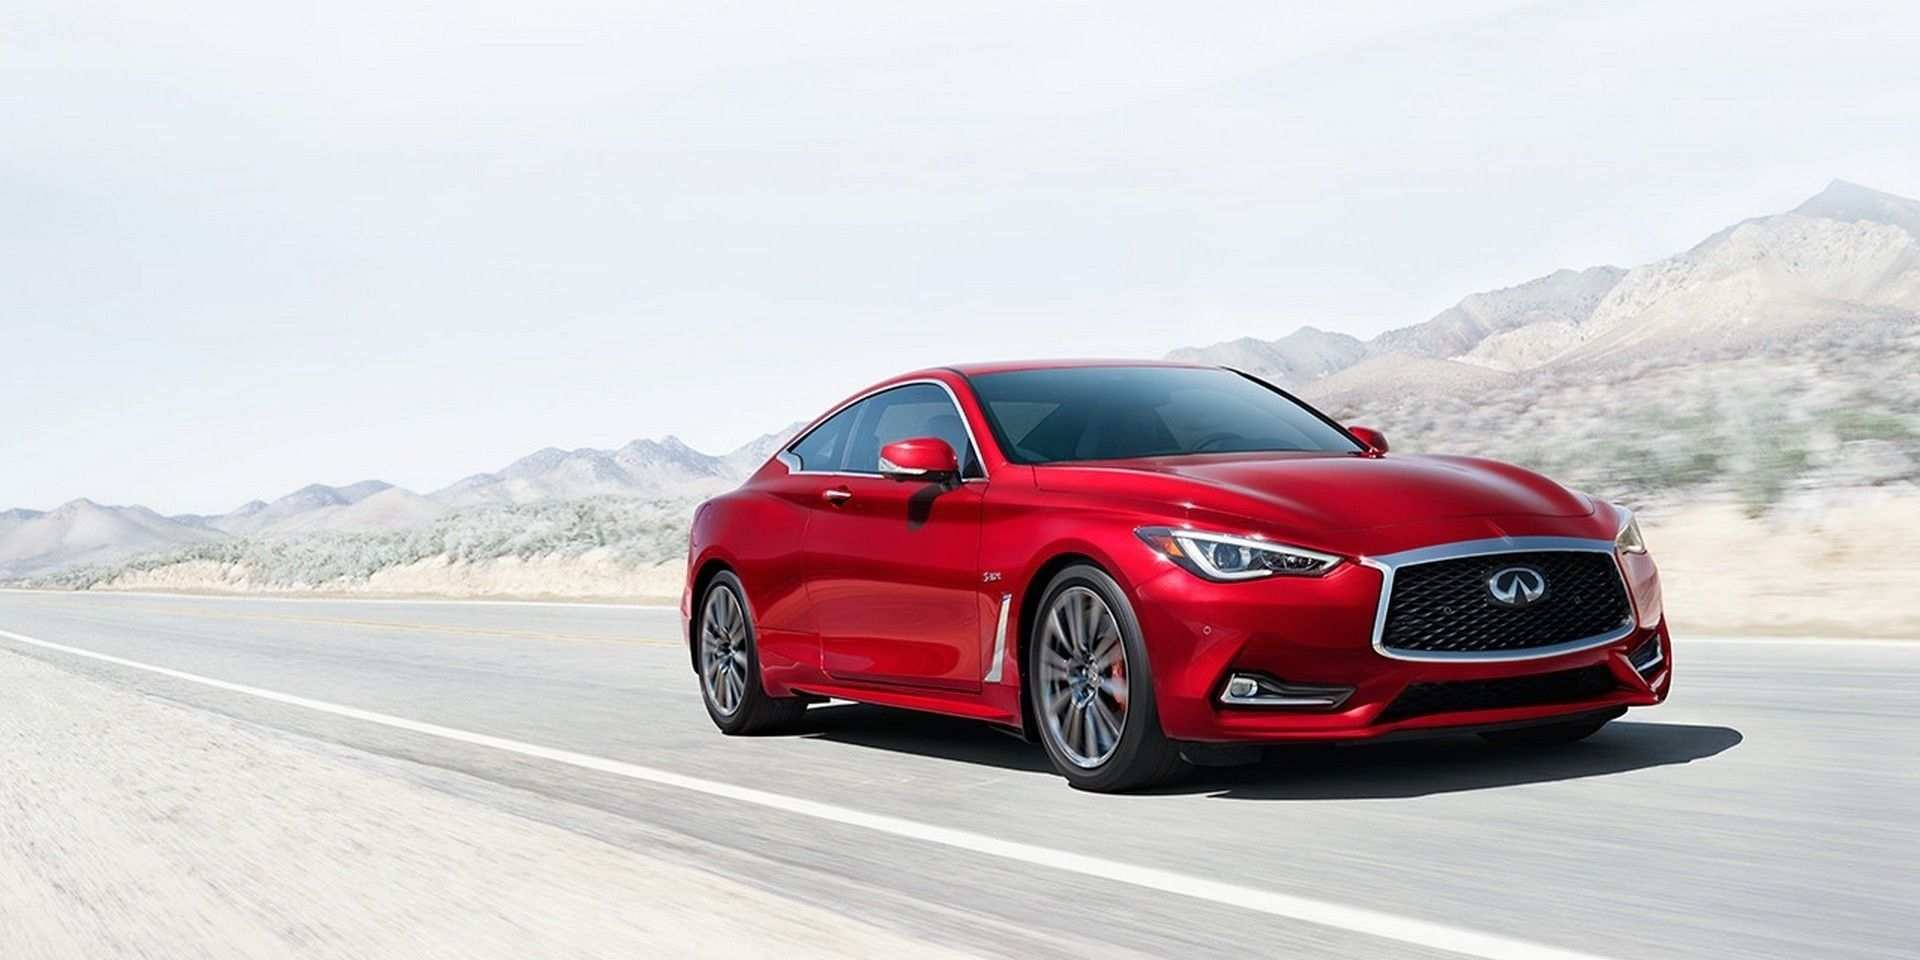 78 The Best 2020 Infiniti G37 New Review